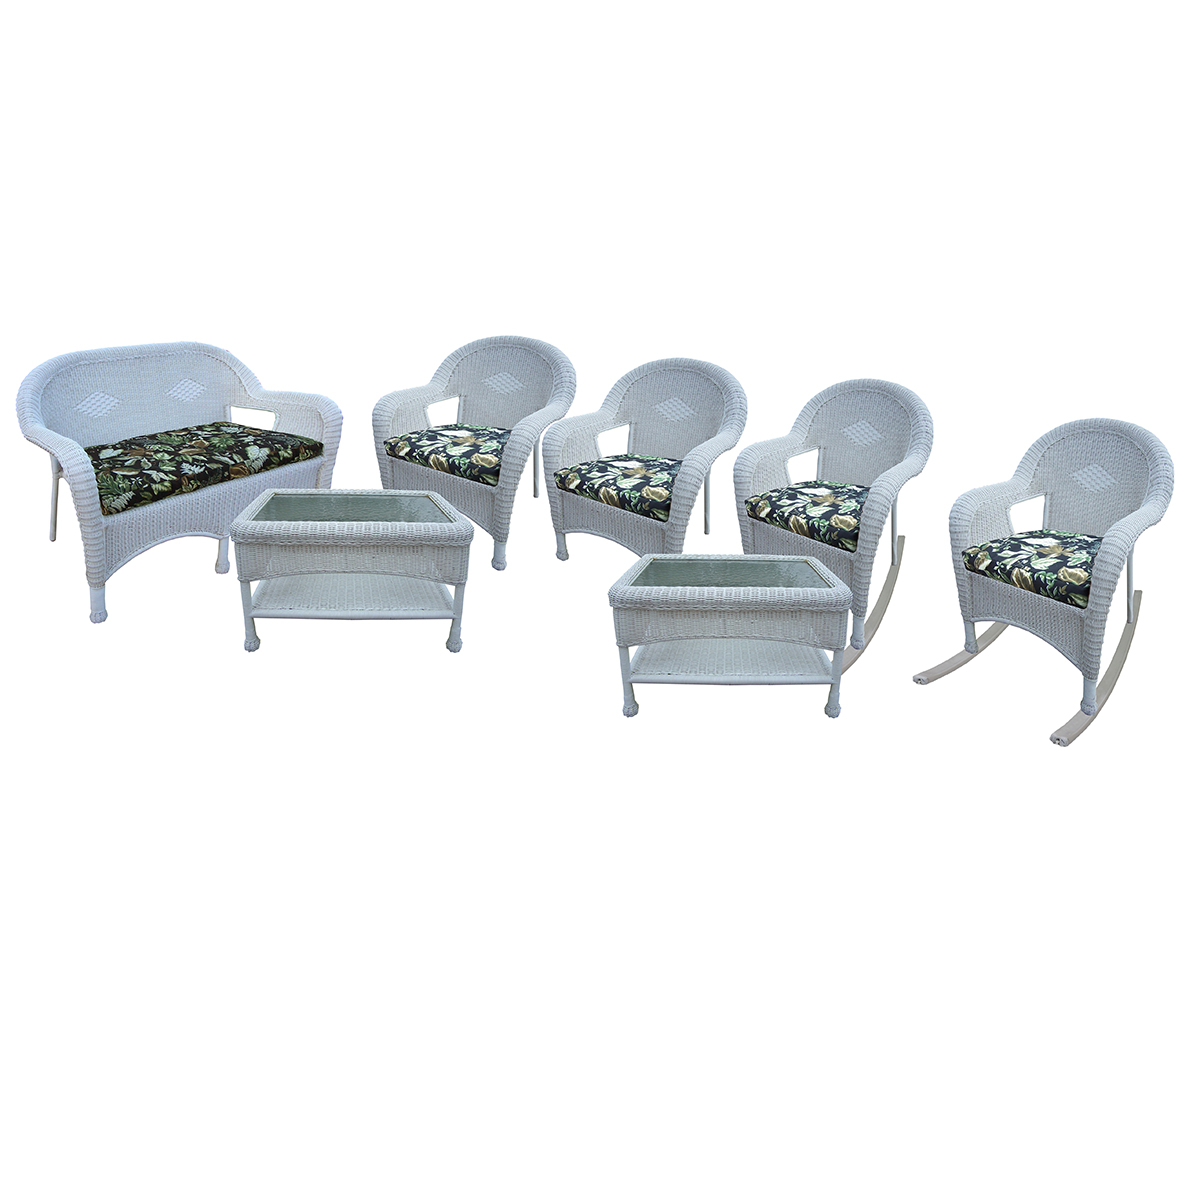 Oakland Living Resin Wicker 7 Pc Seating Set With Cushioned Loveseat 2 Chairs 2 Rockers And 2